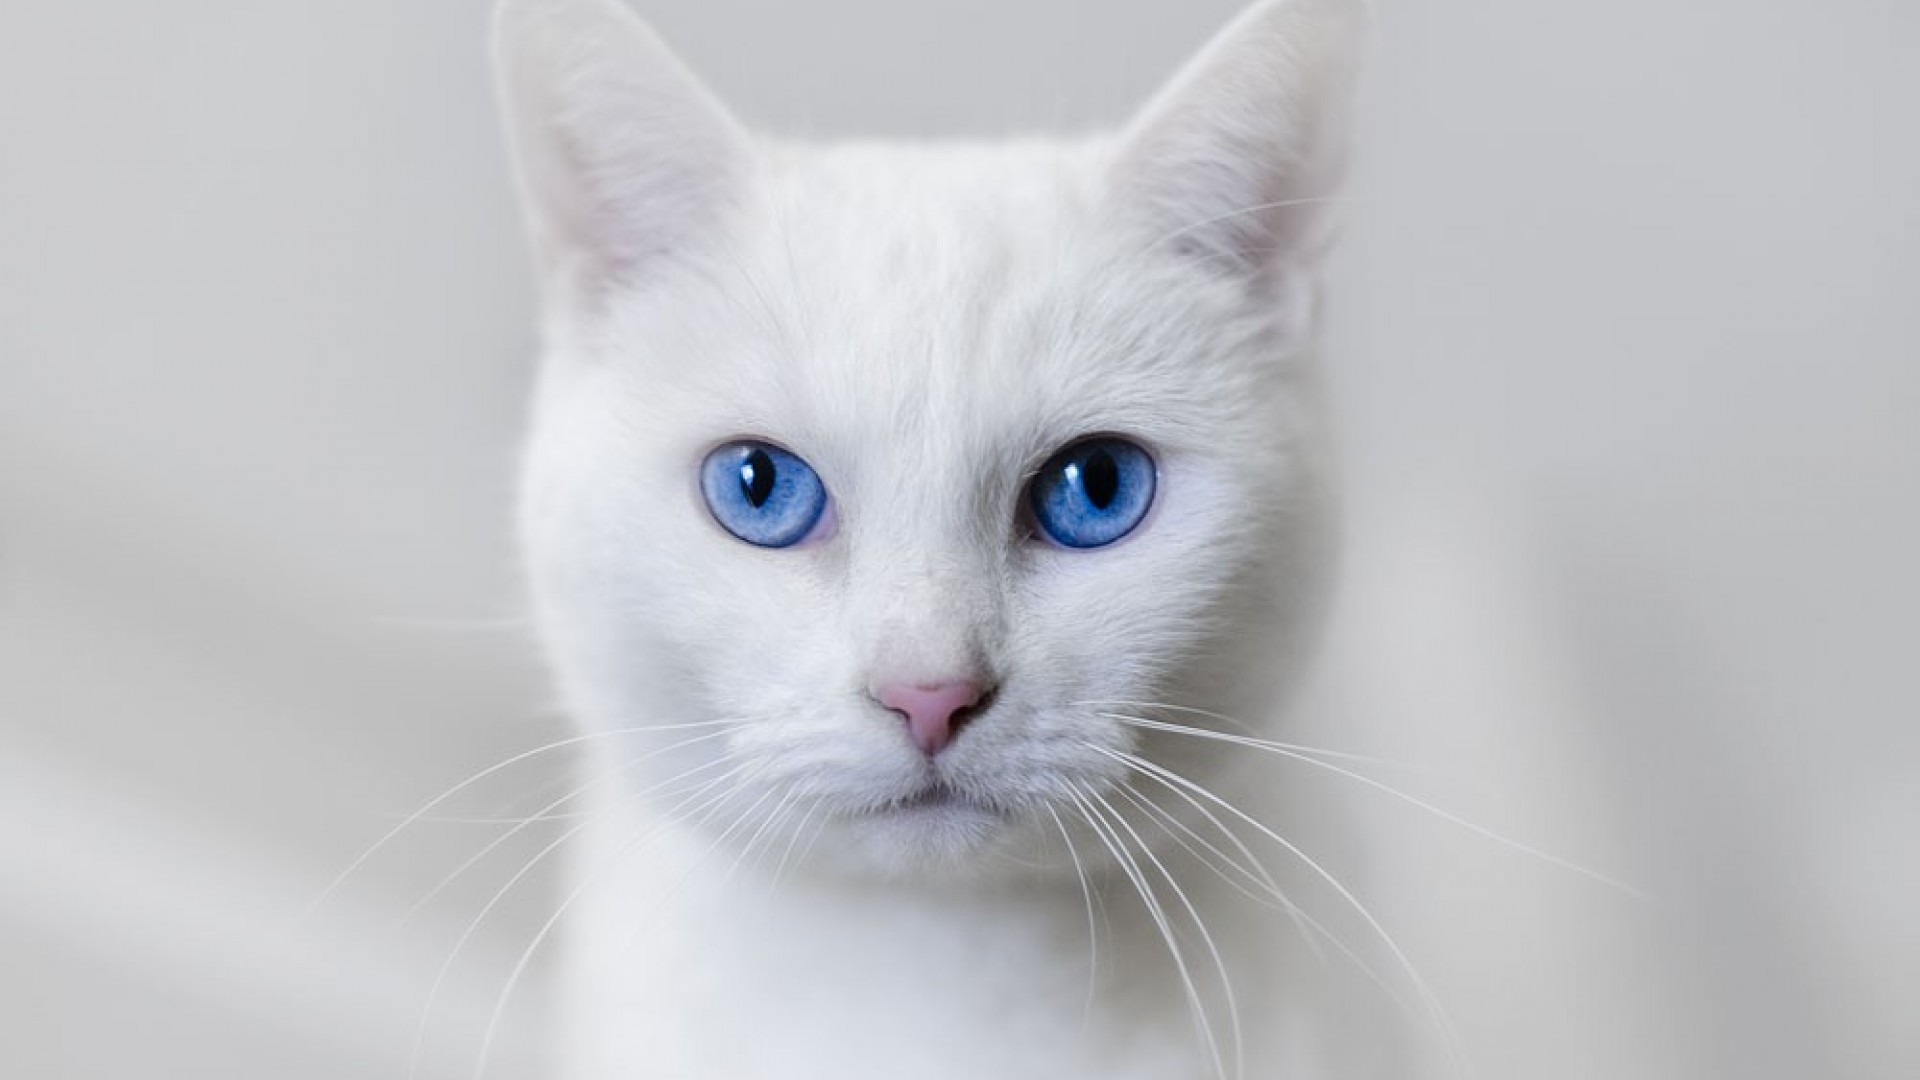 A Beautiful White Cat With Big Blue Eyes Image